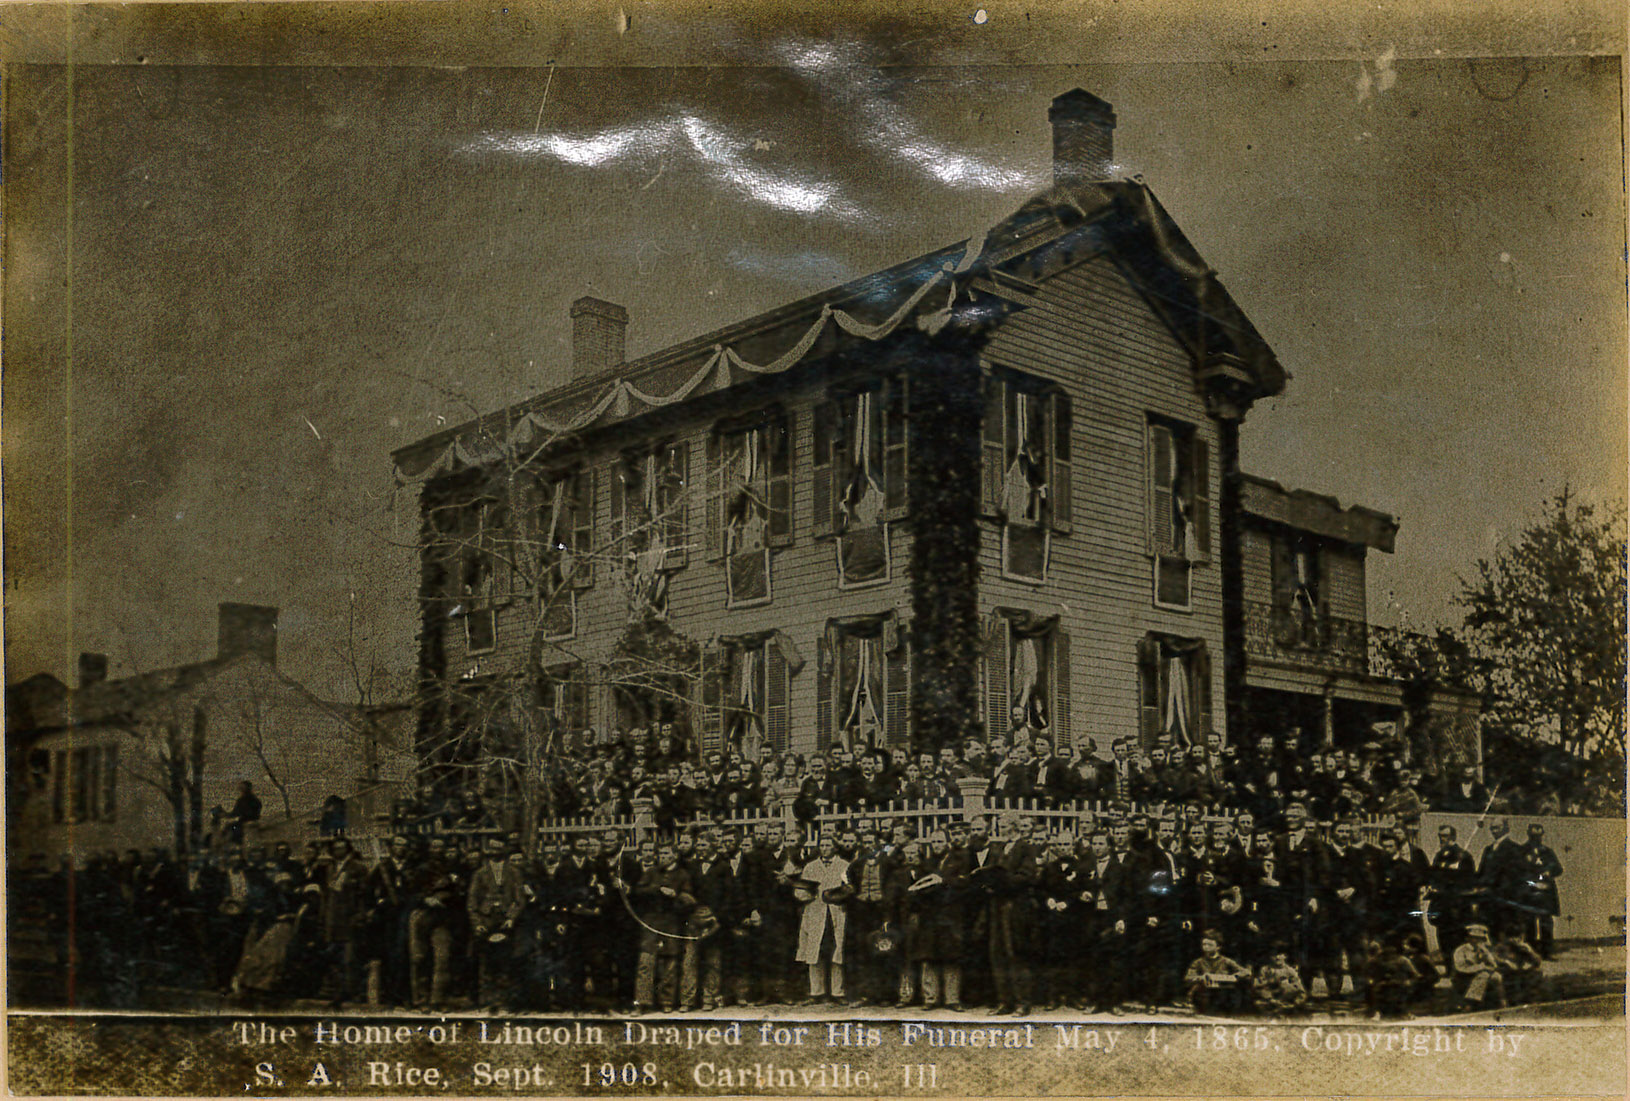 Photograph – Home of Lincoln Draped in Black